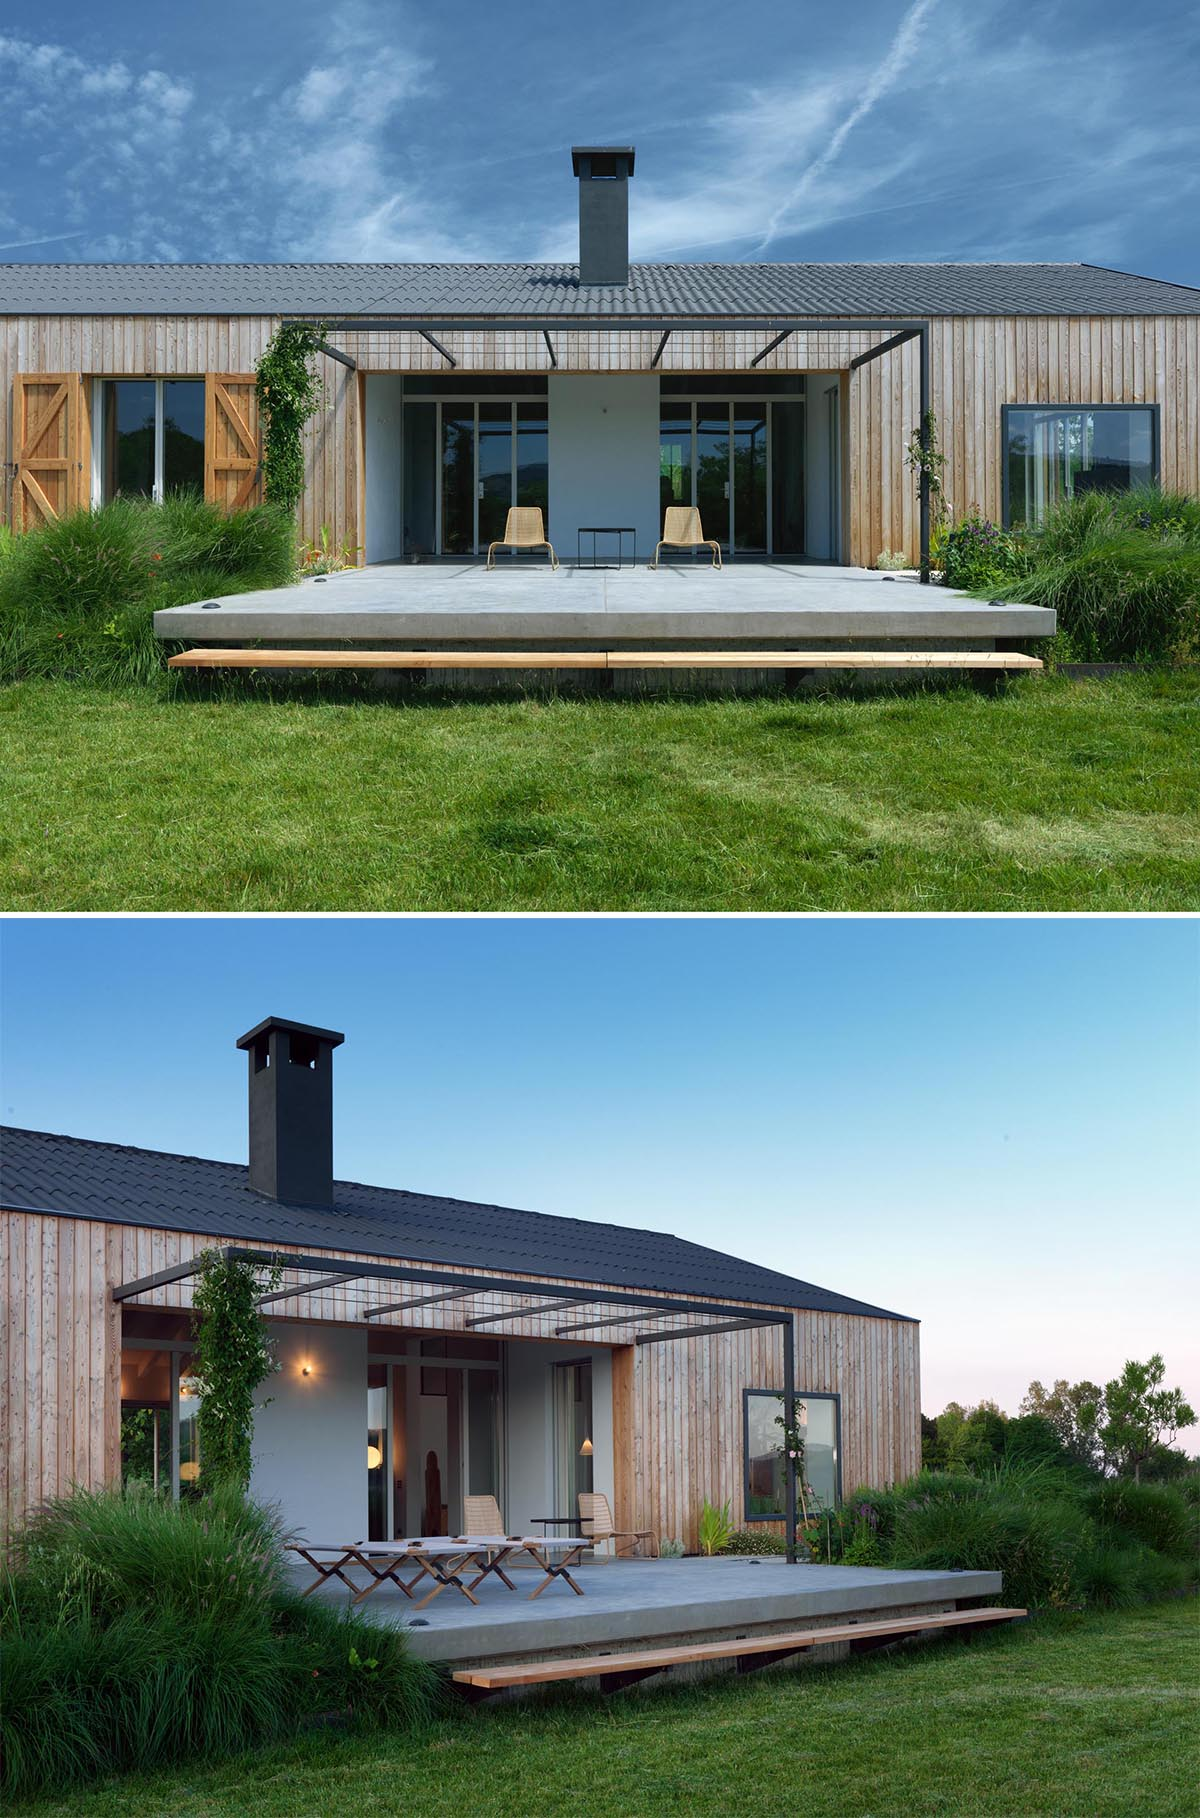 A modern farmhouse with an outdoor patio that has a pergola for the vines to grow over.